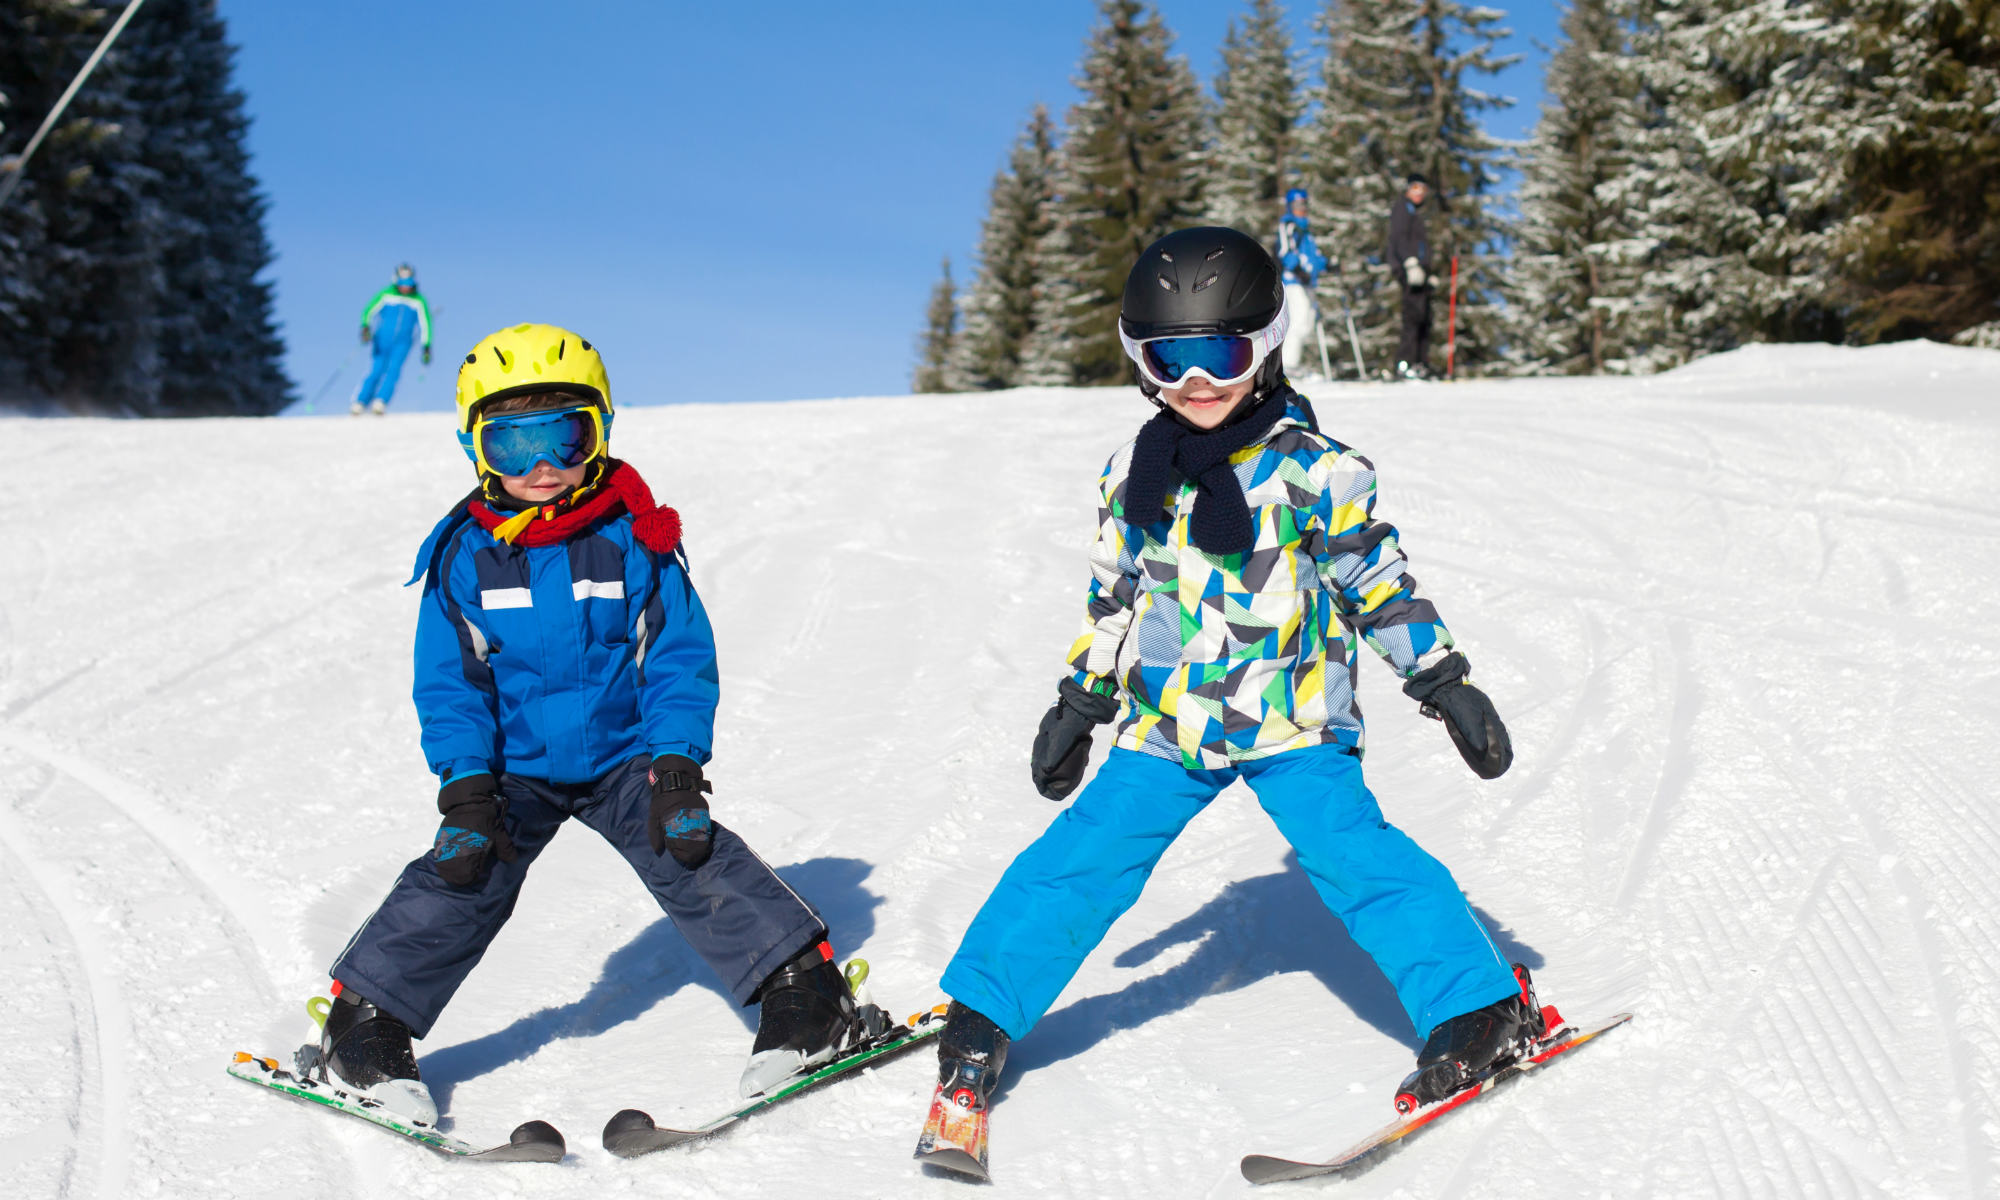 Two children skiing in plough position on a sunny ski slope.